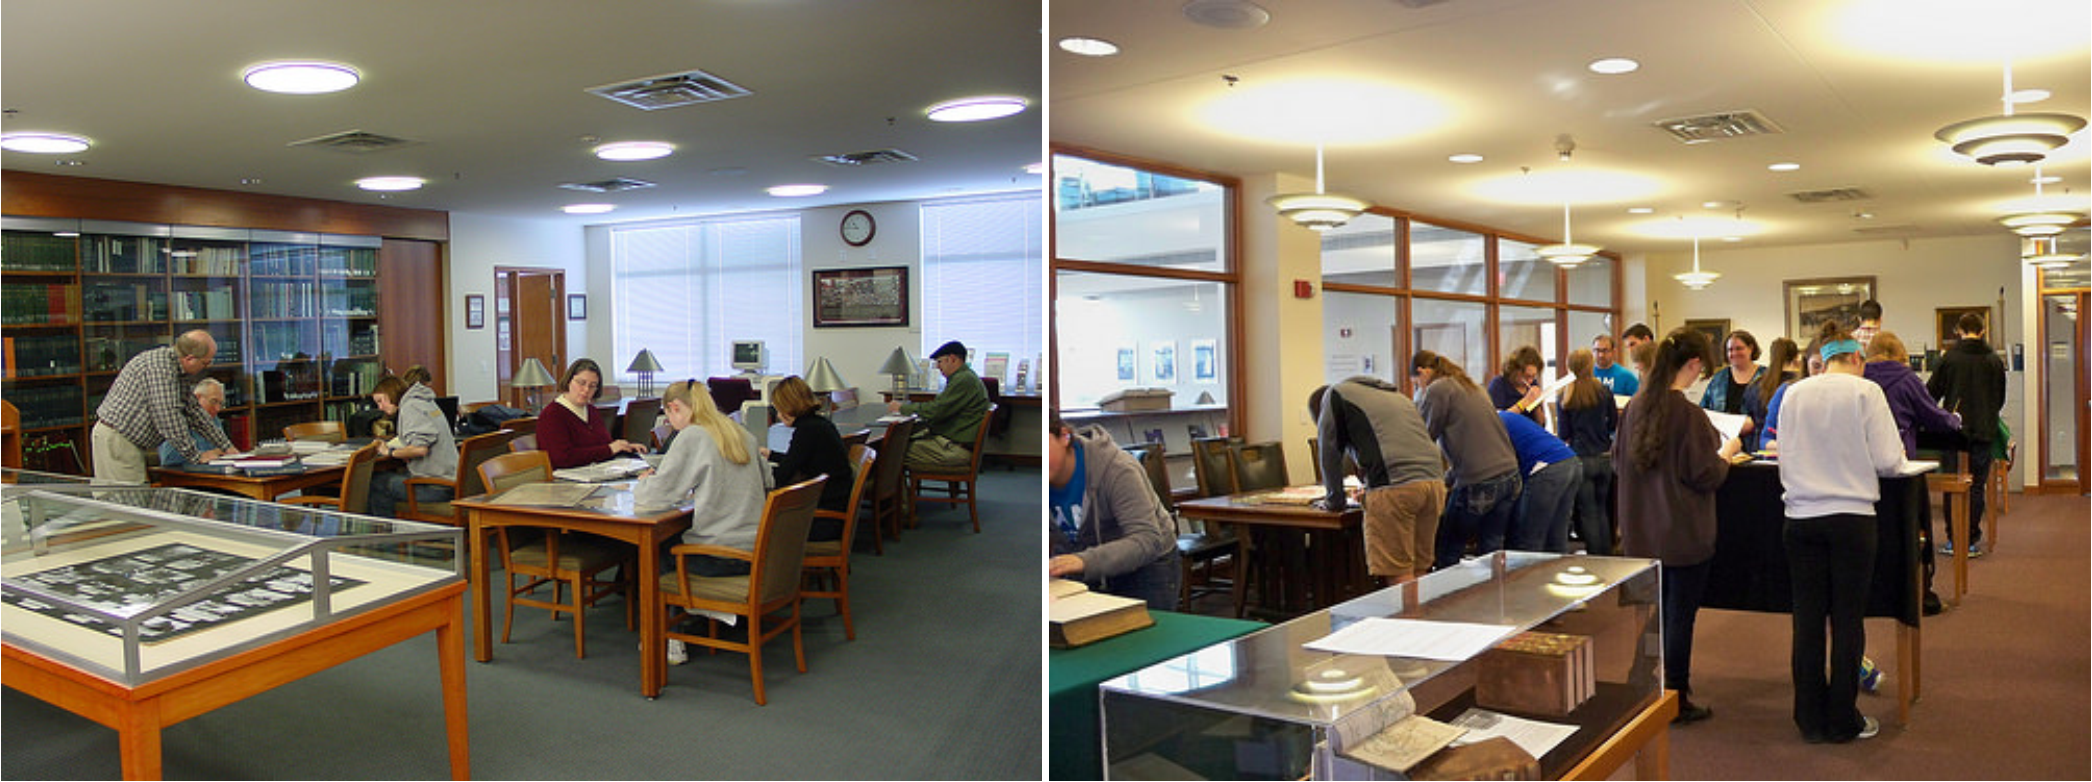 Students and faculty using the center for dubuque history and special collections